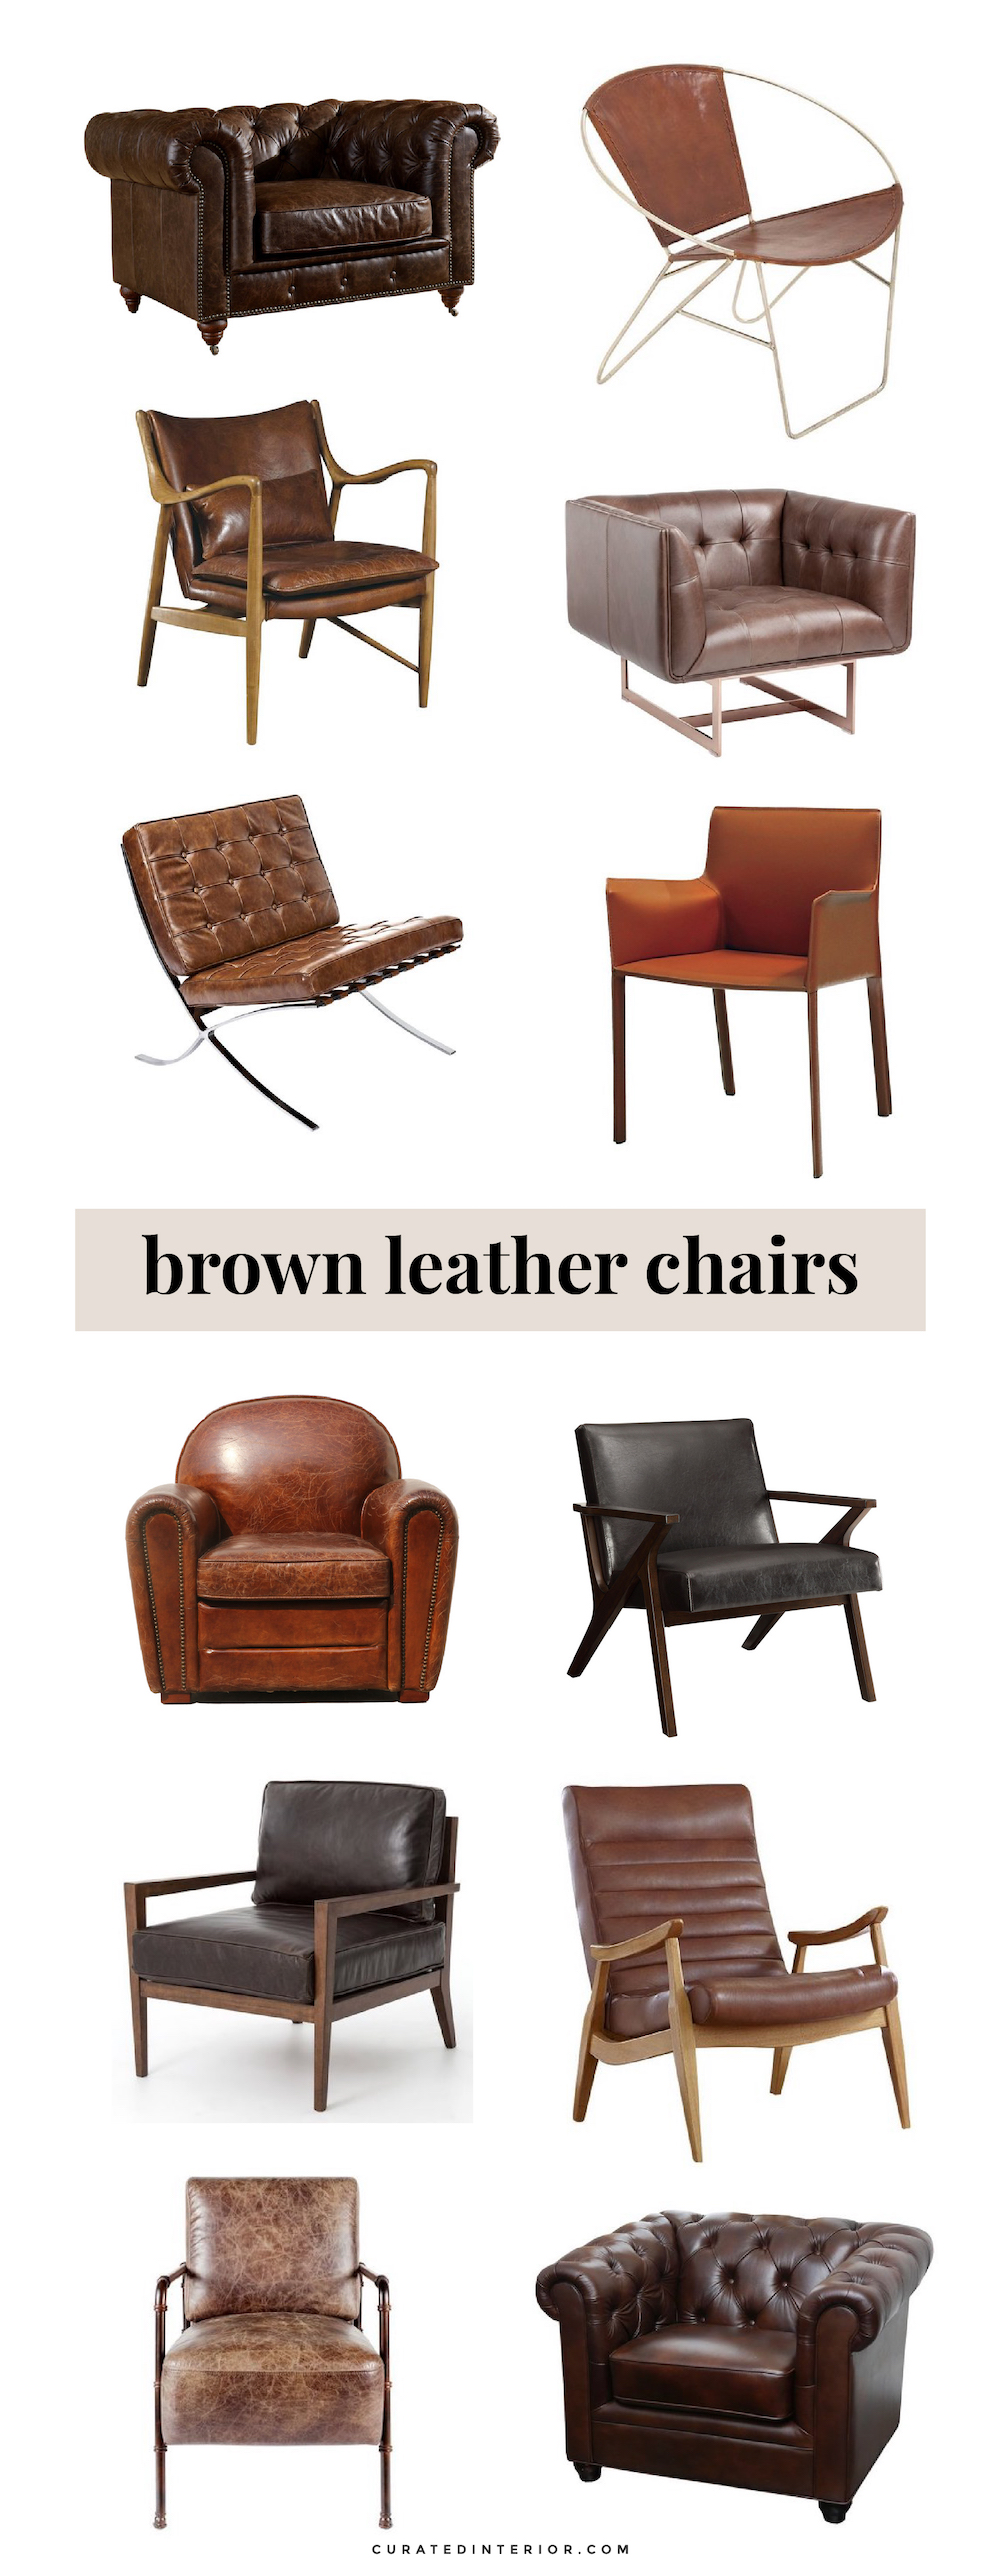 Stupendous 12 Gorgeous Brown Leather Chairs For The Home Pdpeps Interior Chair Design Pdpepsorg